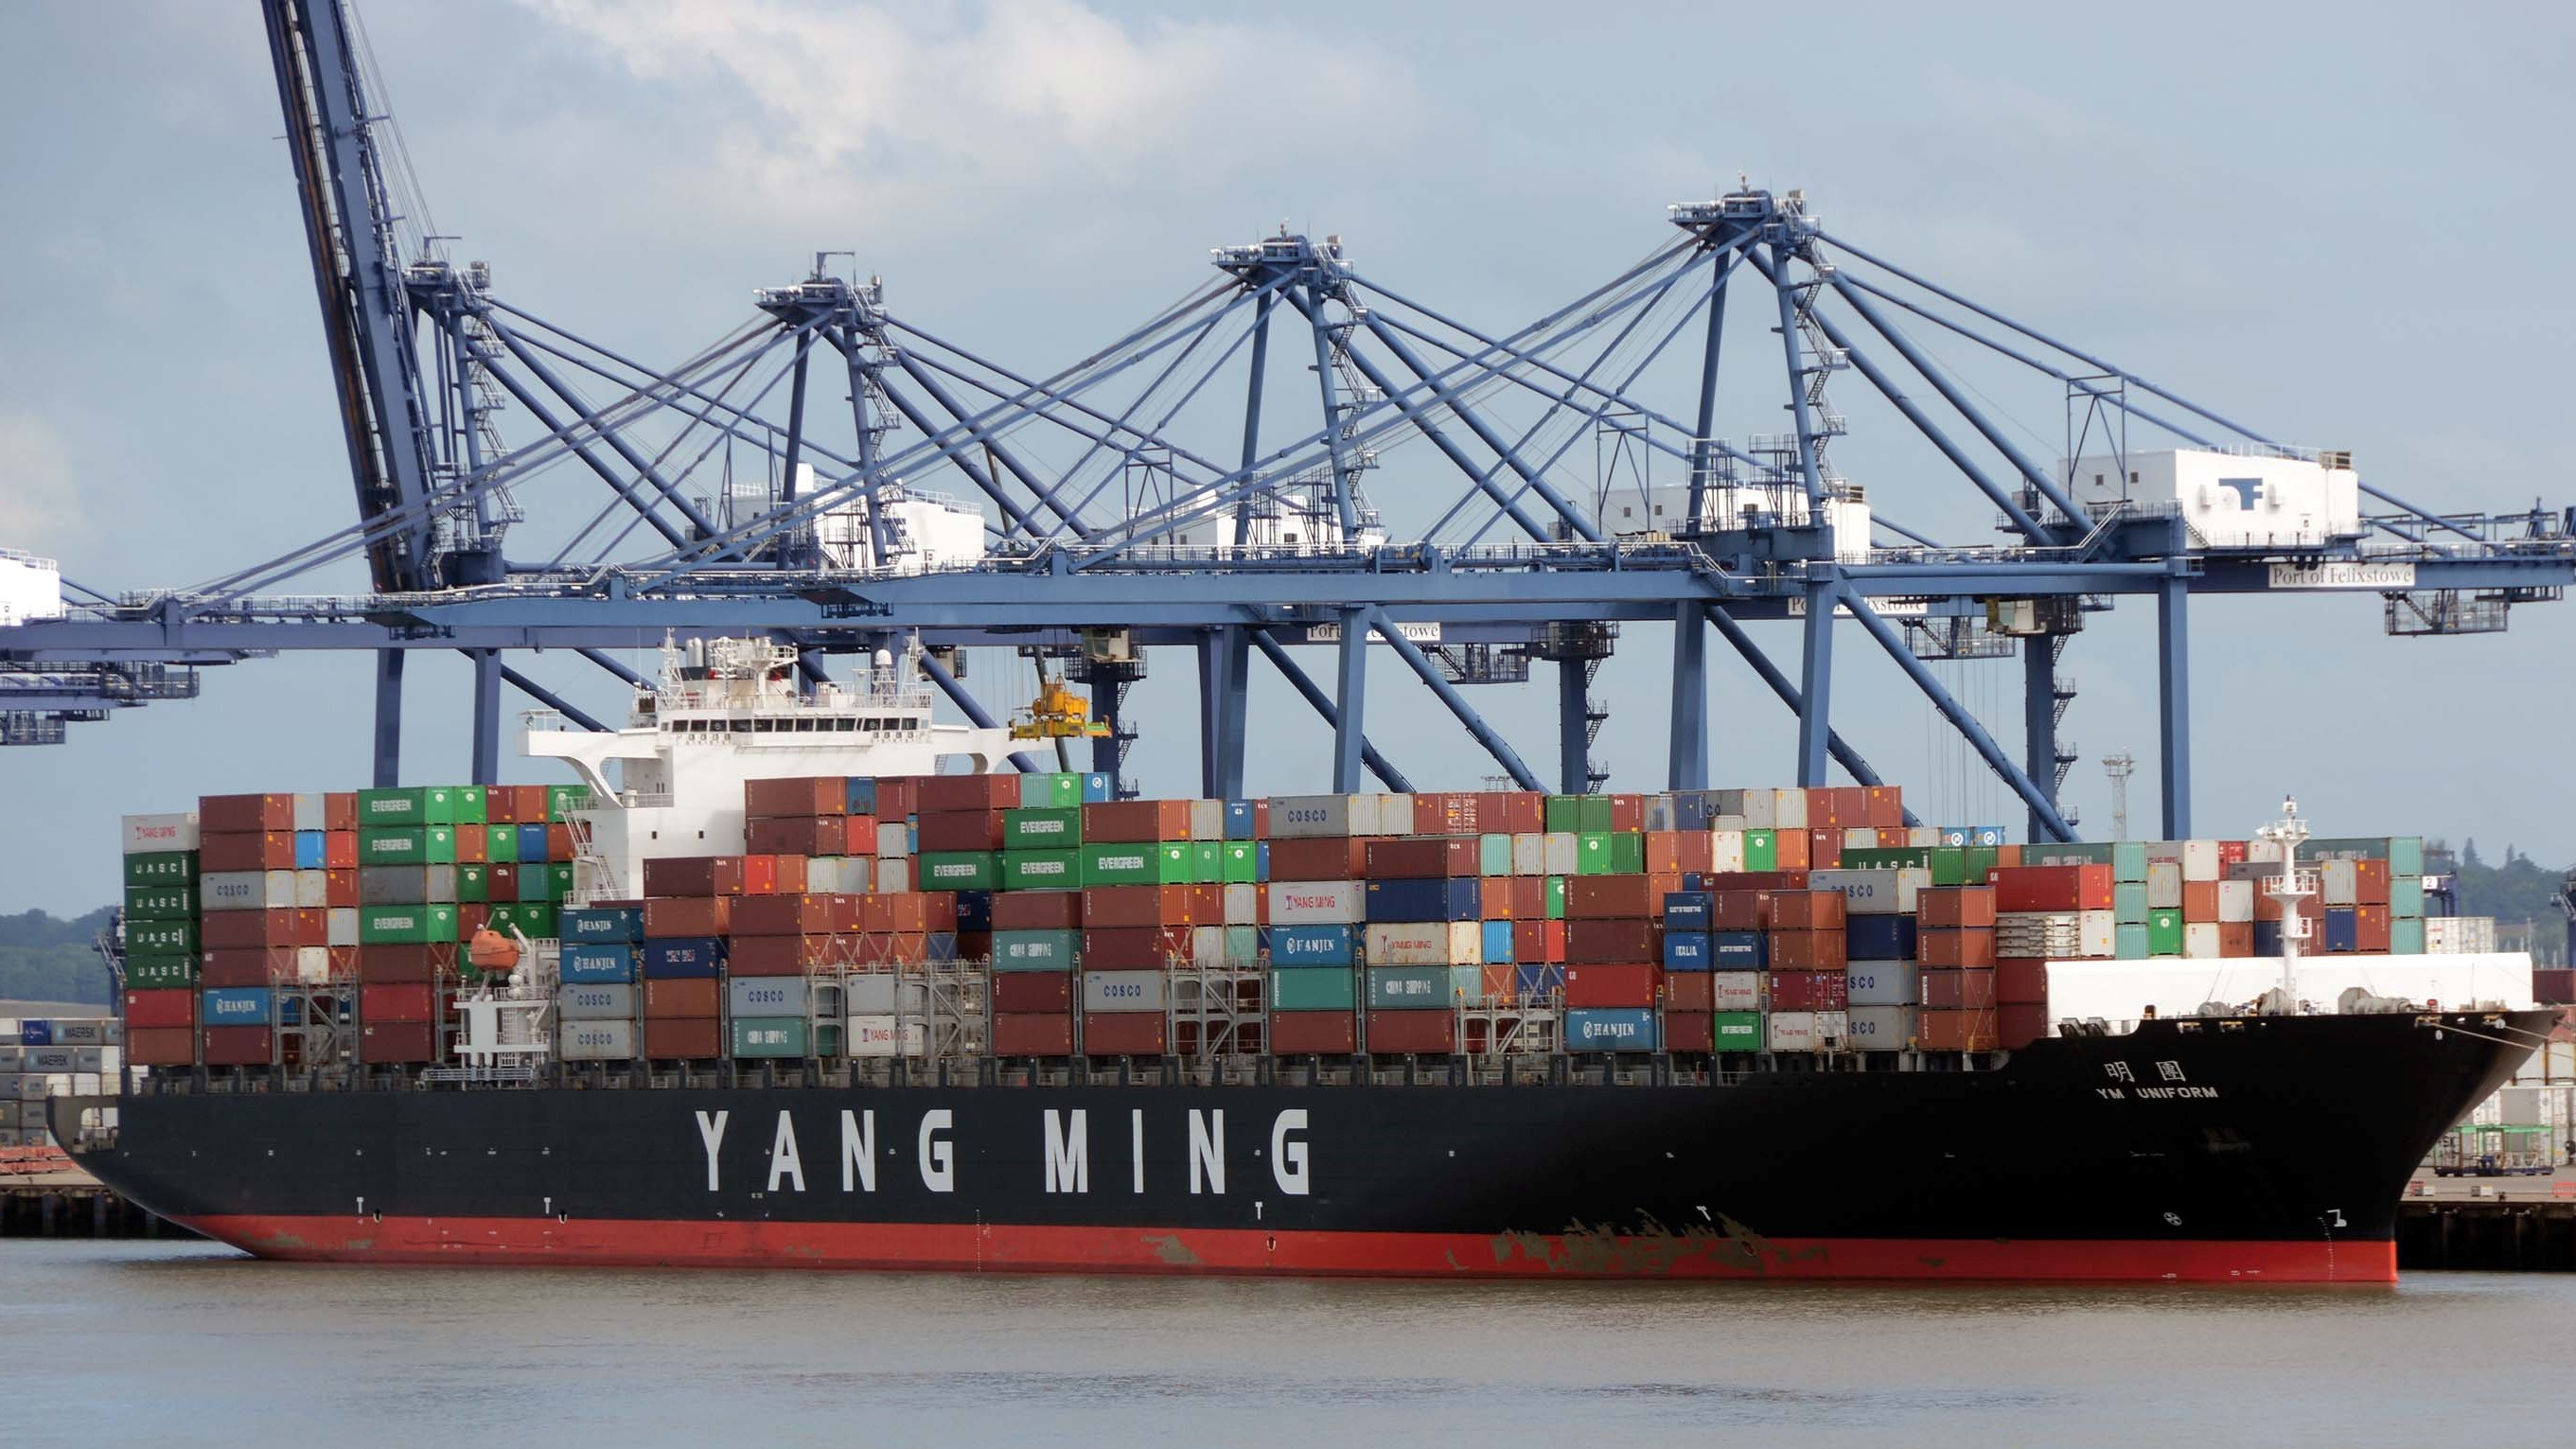 Yang Ming launching another two 14.000 TEU container ships 1